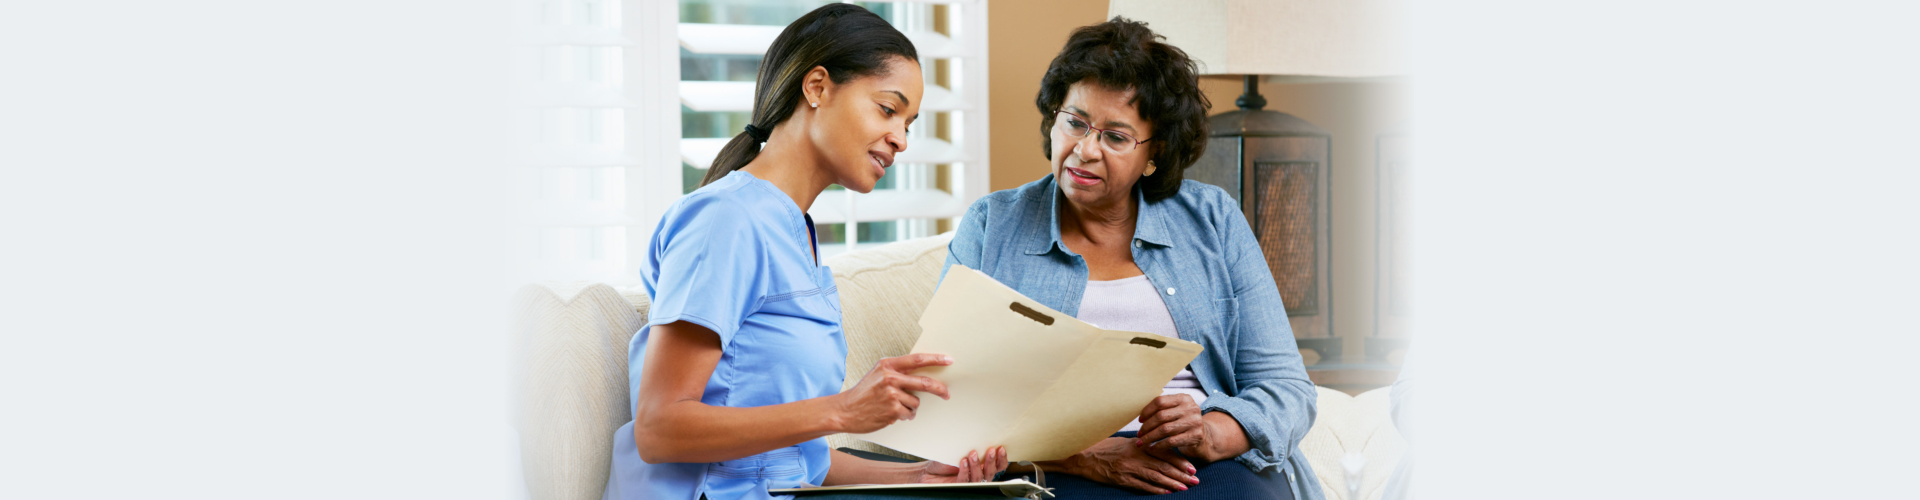 Nurse Discussing Records With Senior Female Patient During Home Visit Talking